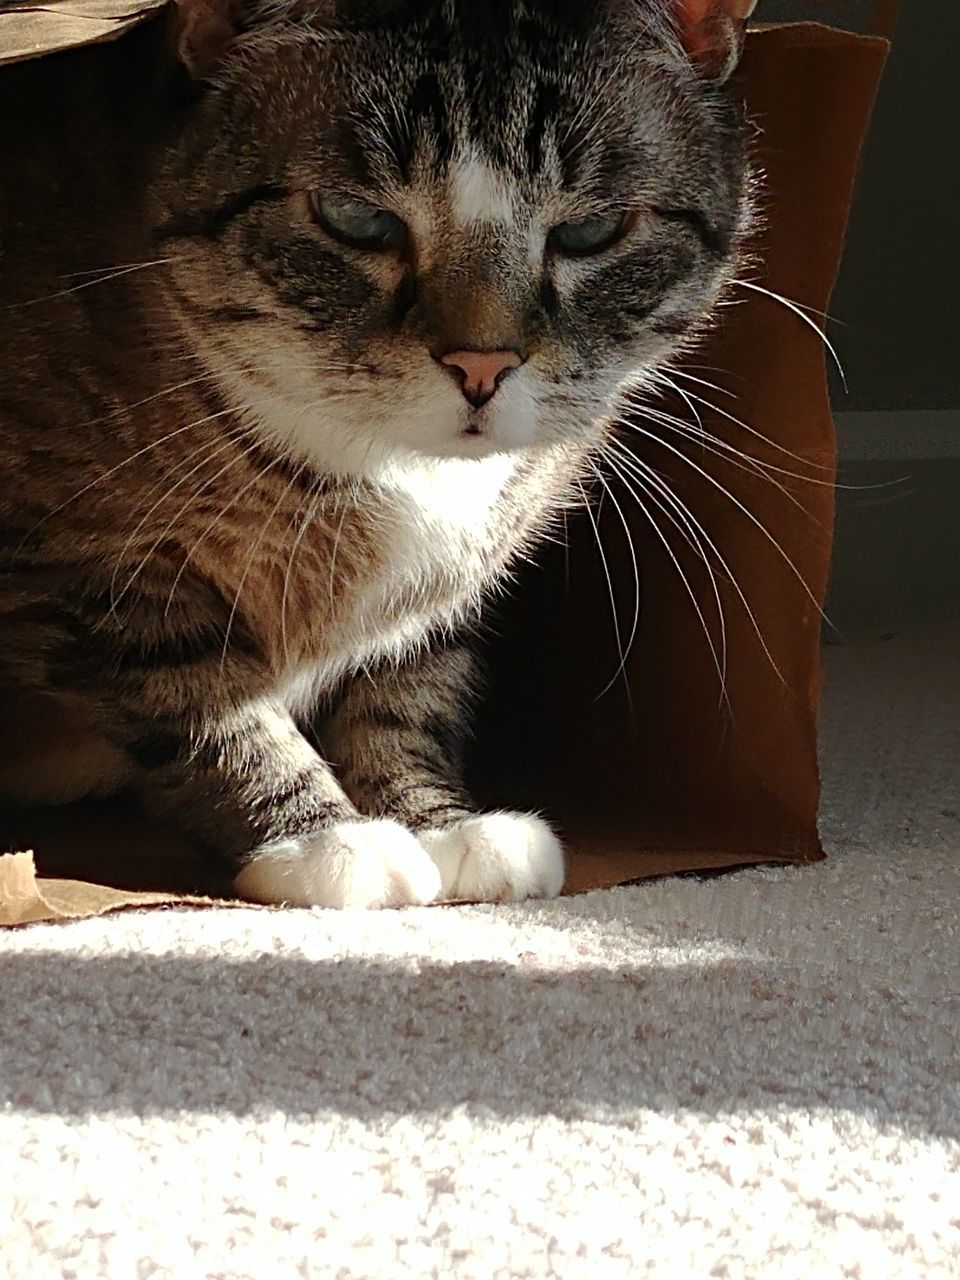 cat, domestic cat, feline, domestic, pets, domestic animals, mammal, vertebrate, one animal, whisker, sunlight, no people, close-up, relaxation, sitting, indoors, day